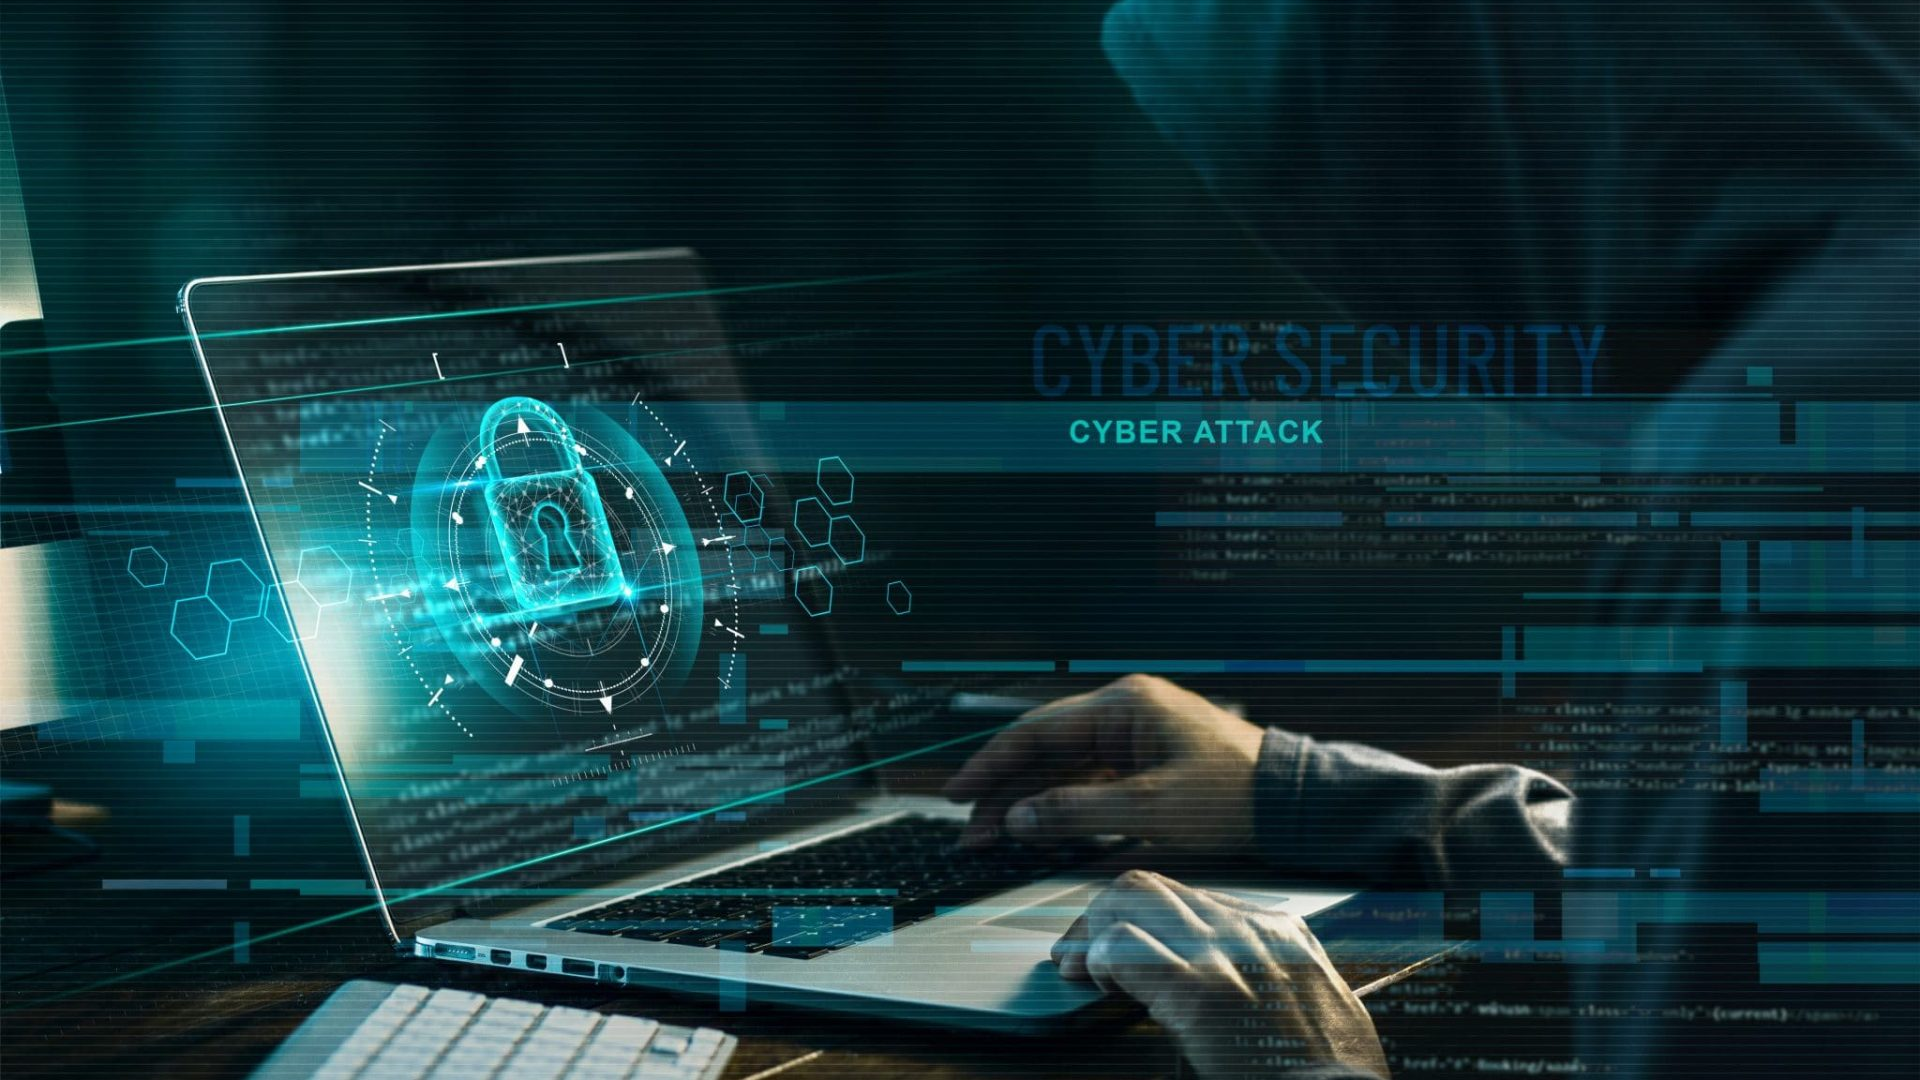 cyber securite illustration